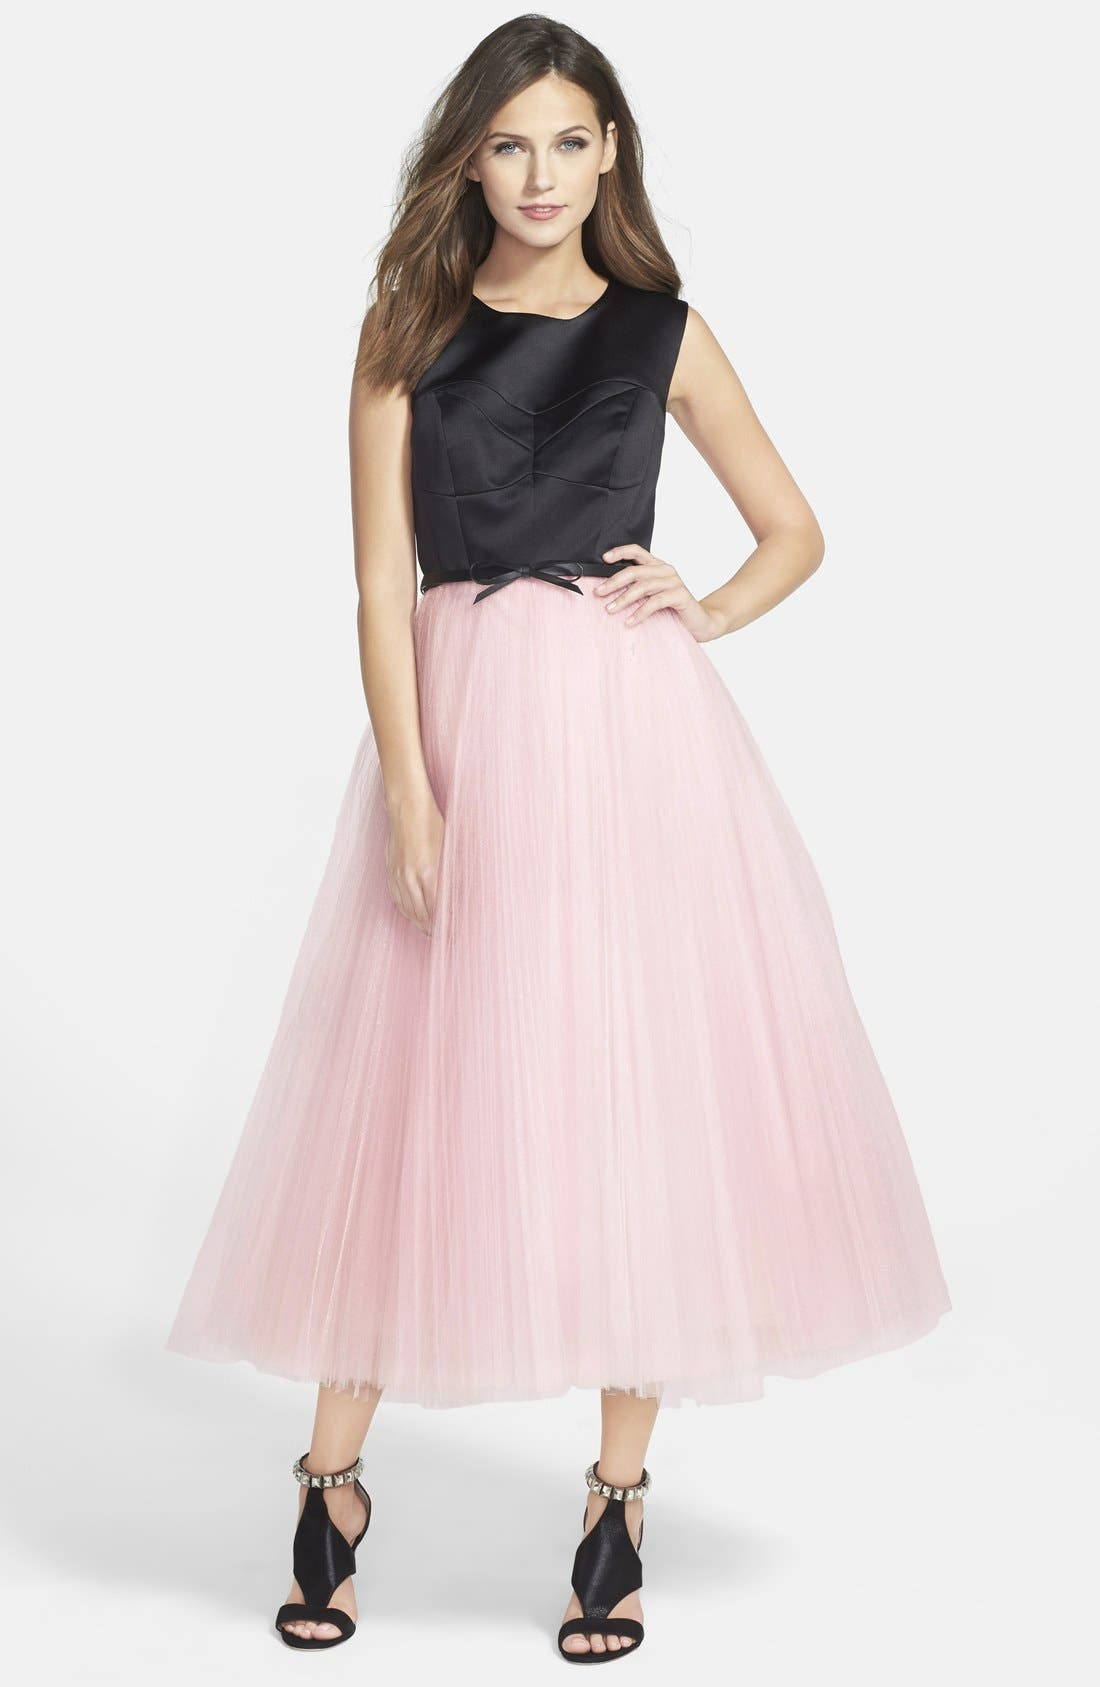 Main Image - Milly Tulle Skirt Fit & Flare Midi Dress